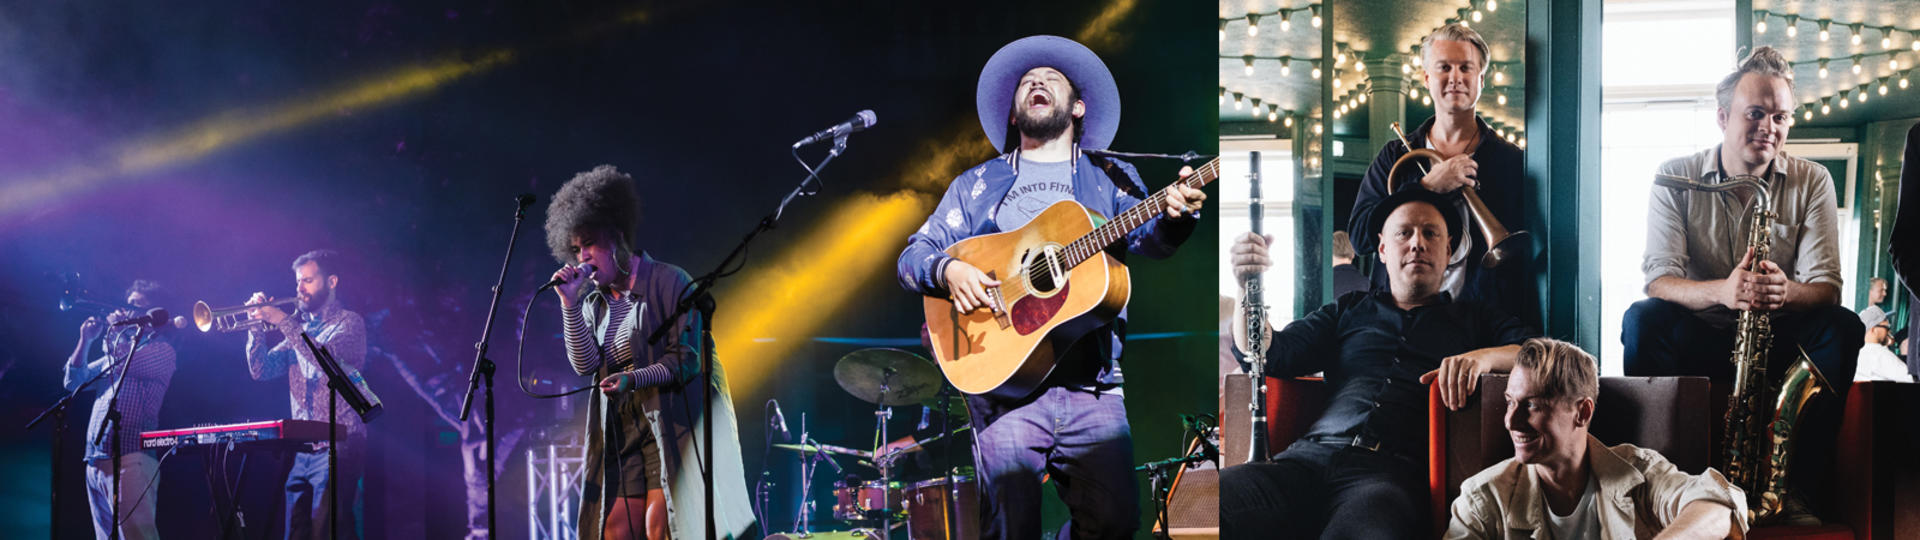 Image of bands, Dustbowl Revival and Mames Babegenush